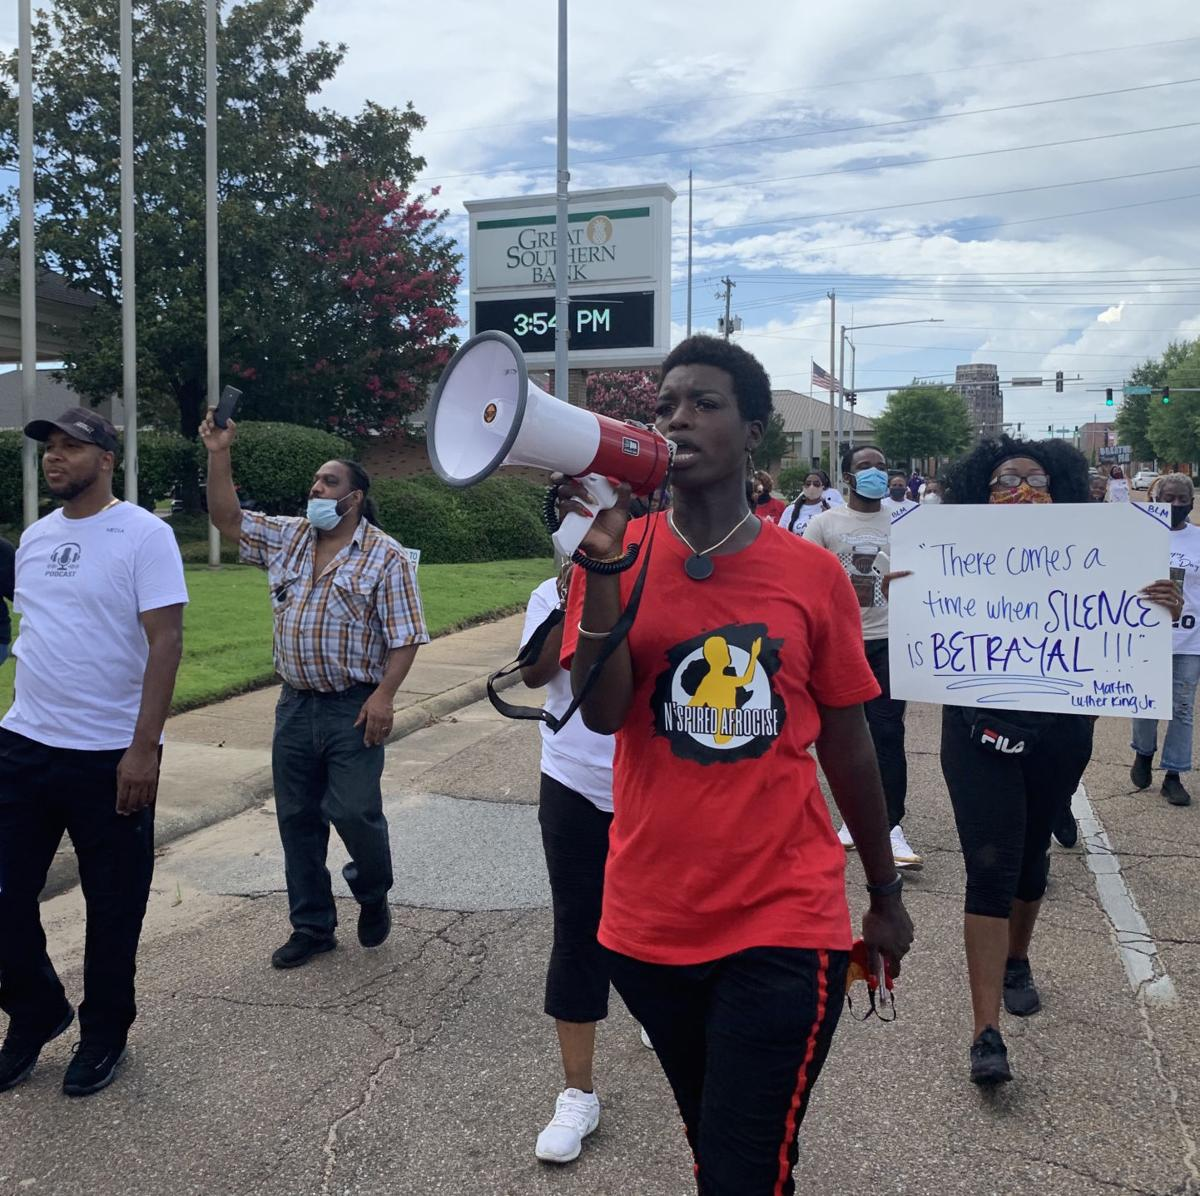 Group seeks monument removal, flag change, arrest investigation in Meridian peace rally